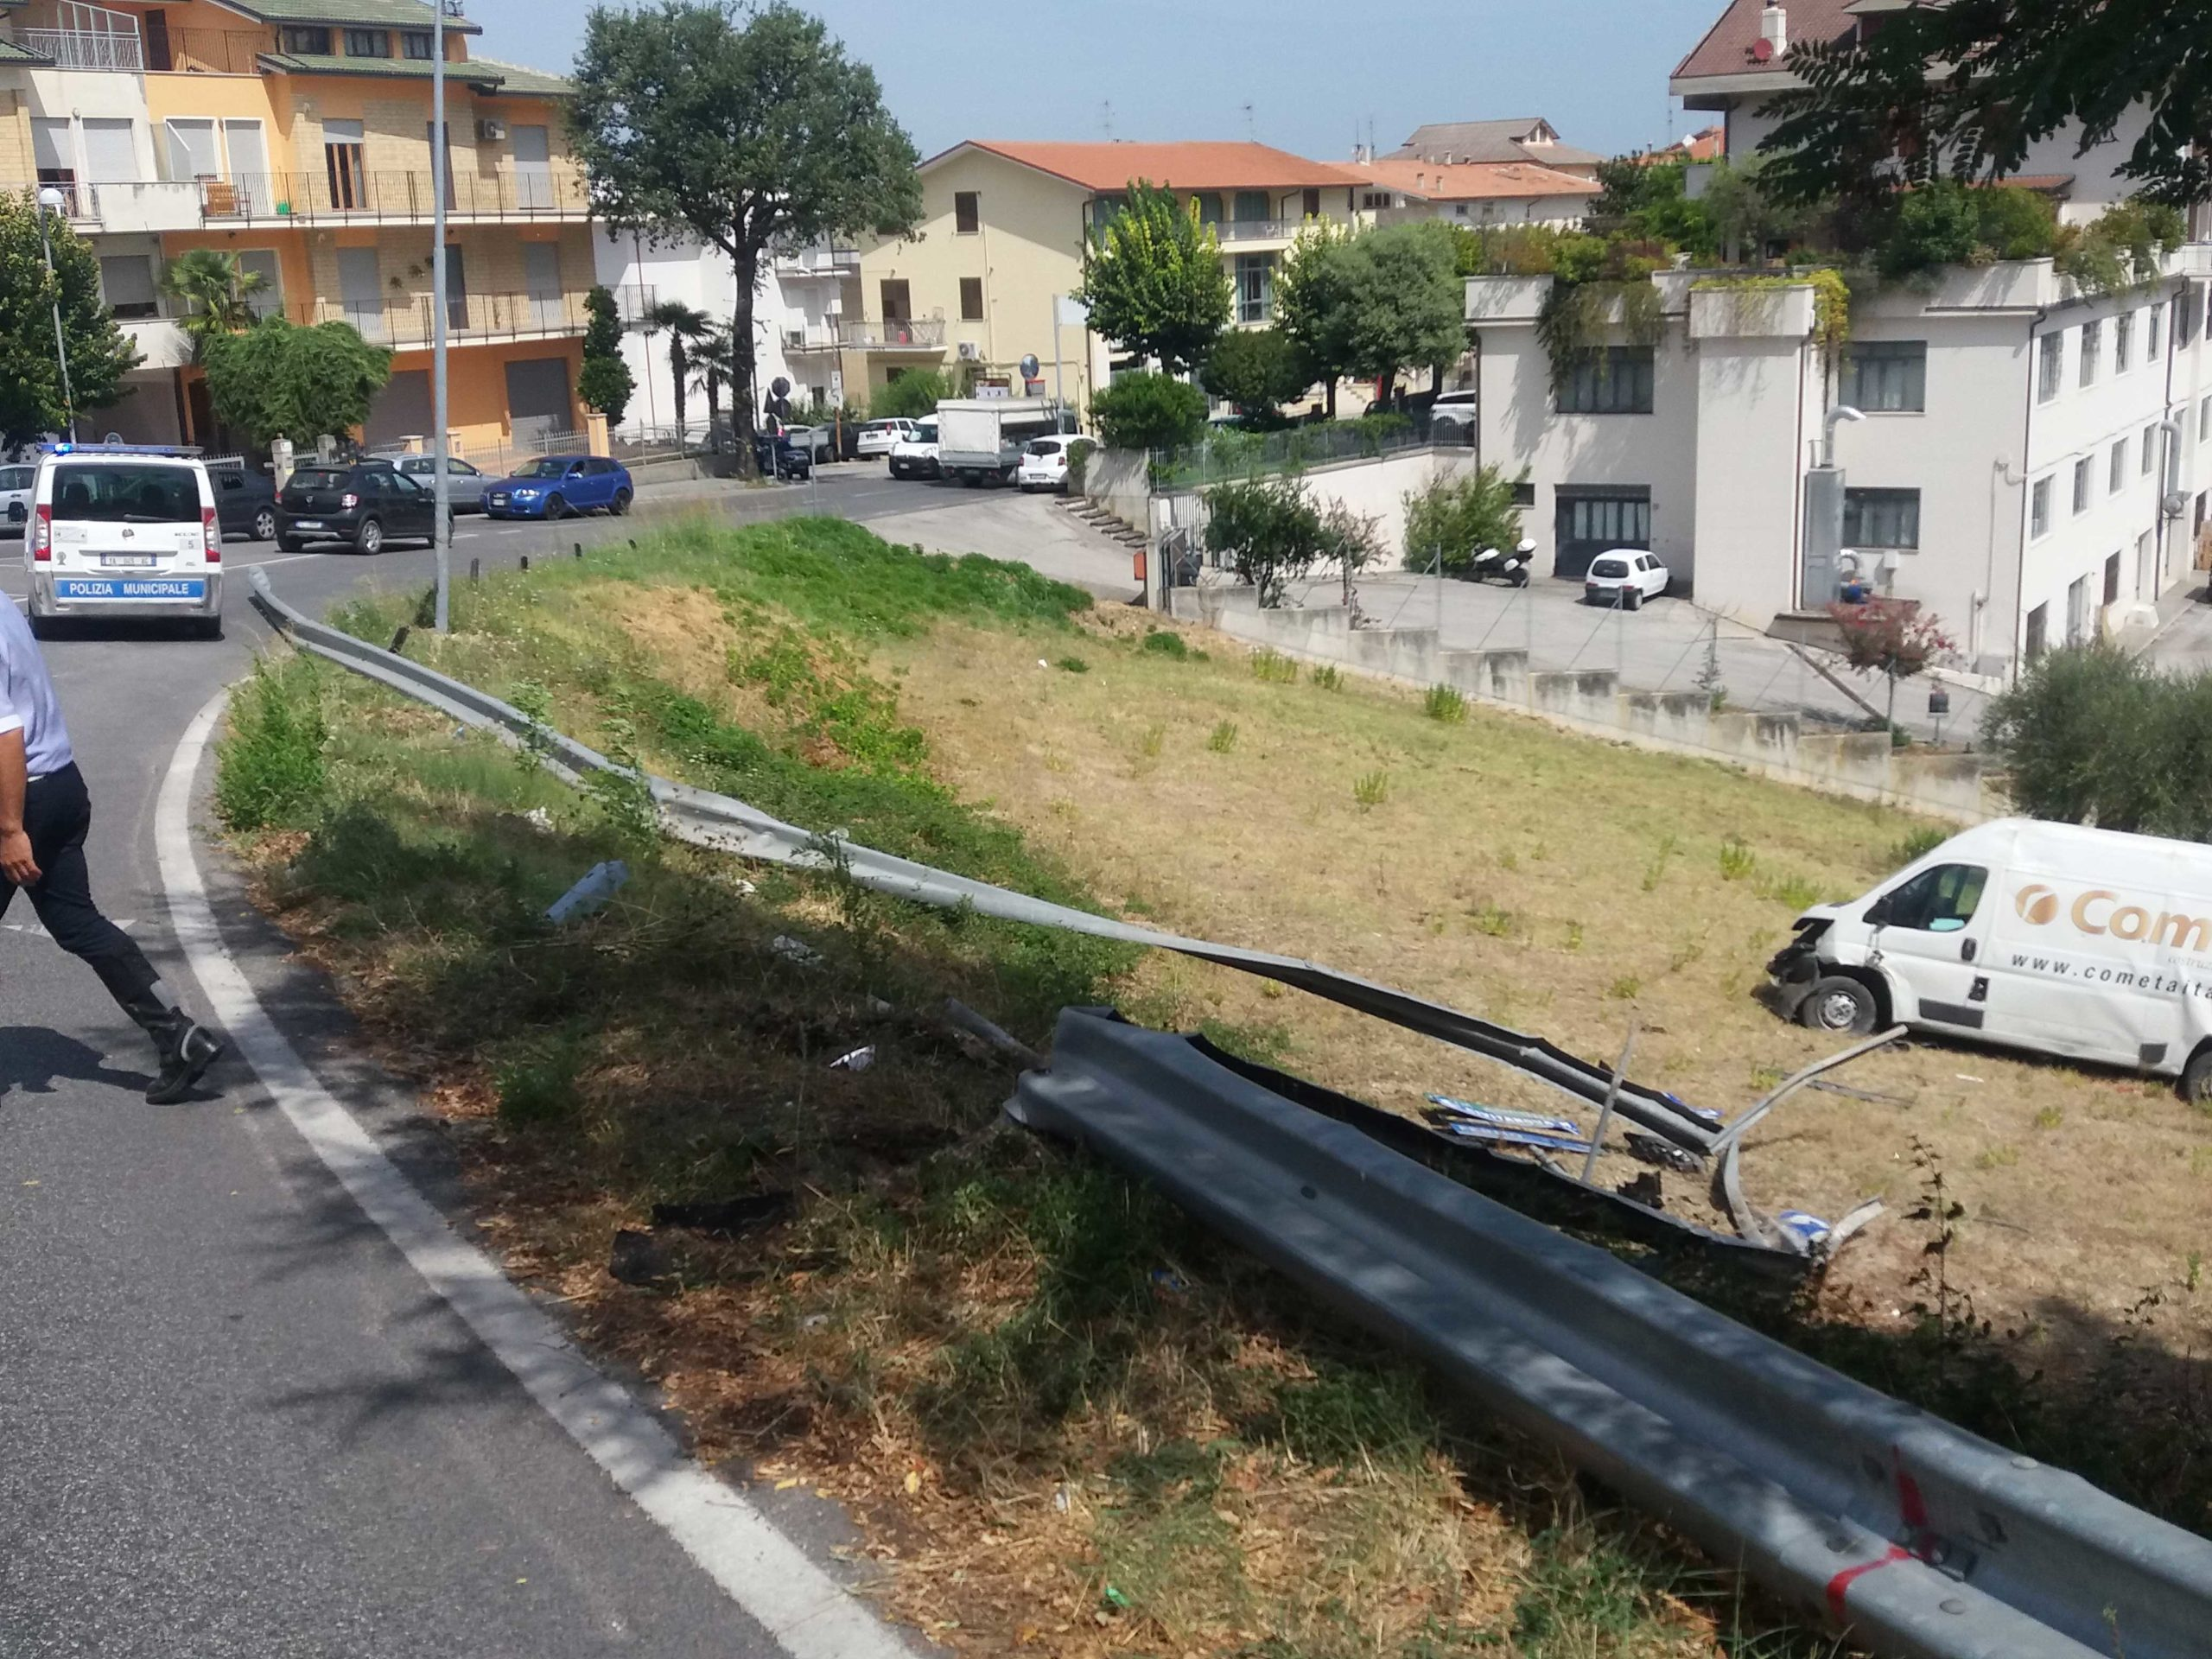 Ripristino strada post incidente Montegranaro (Fermo) - prima